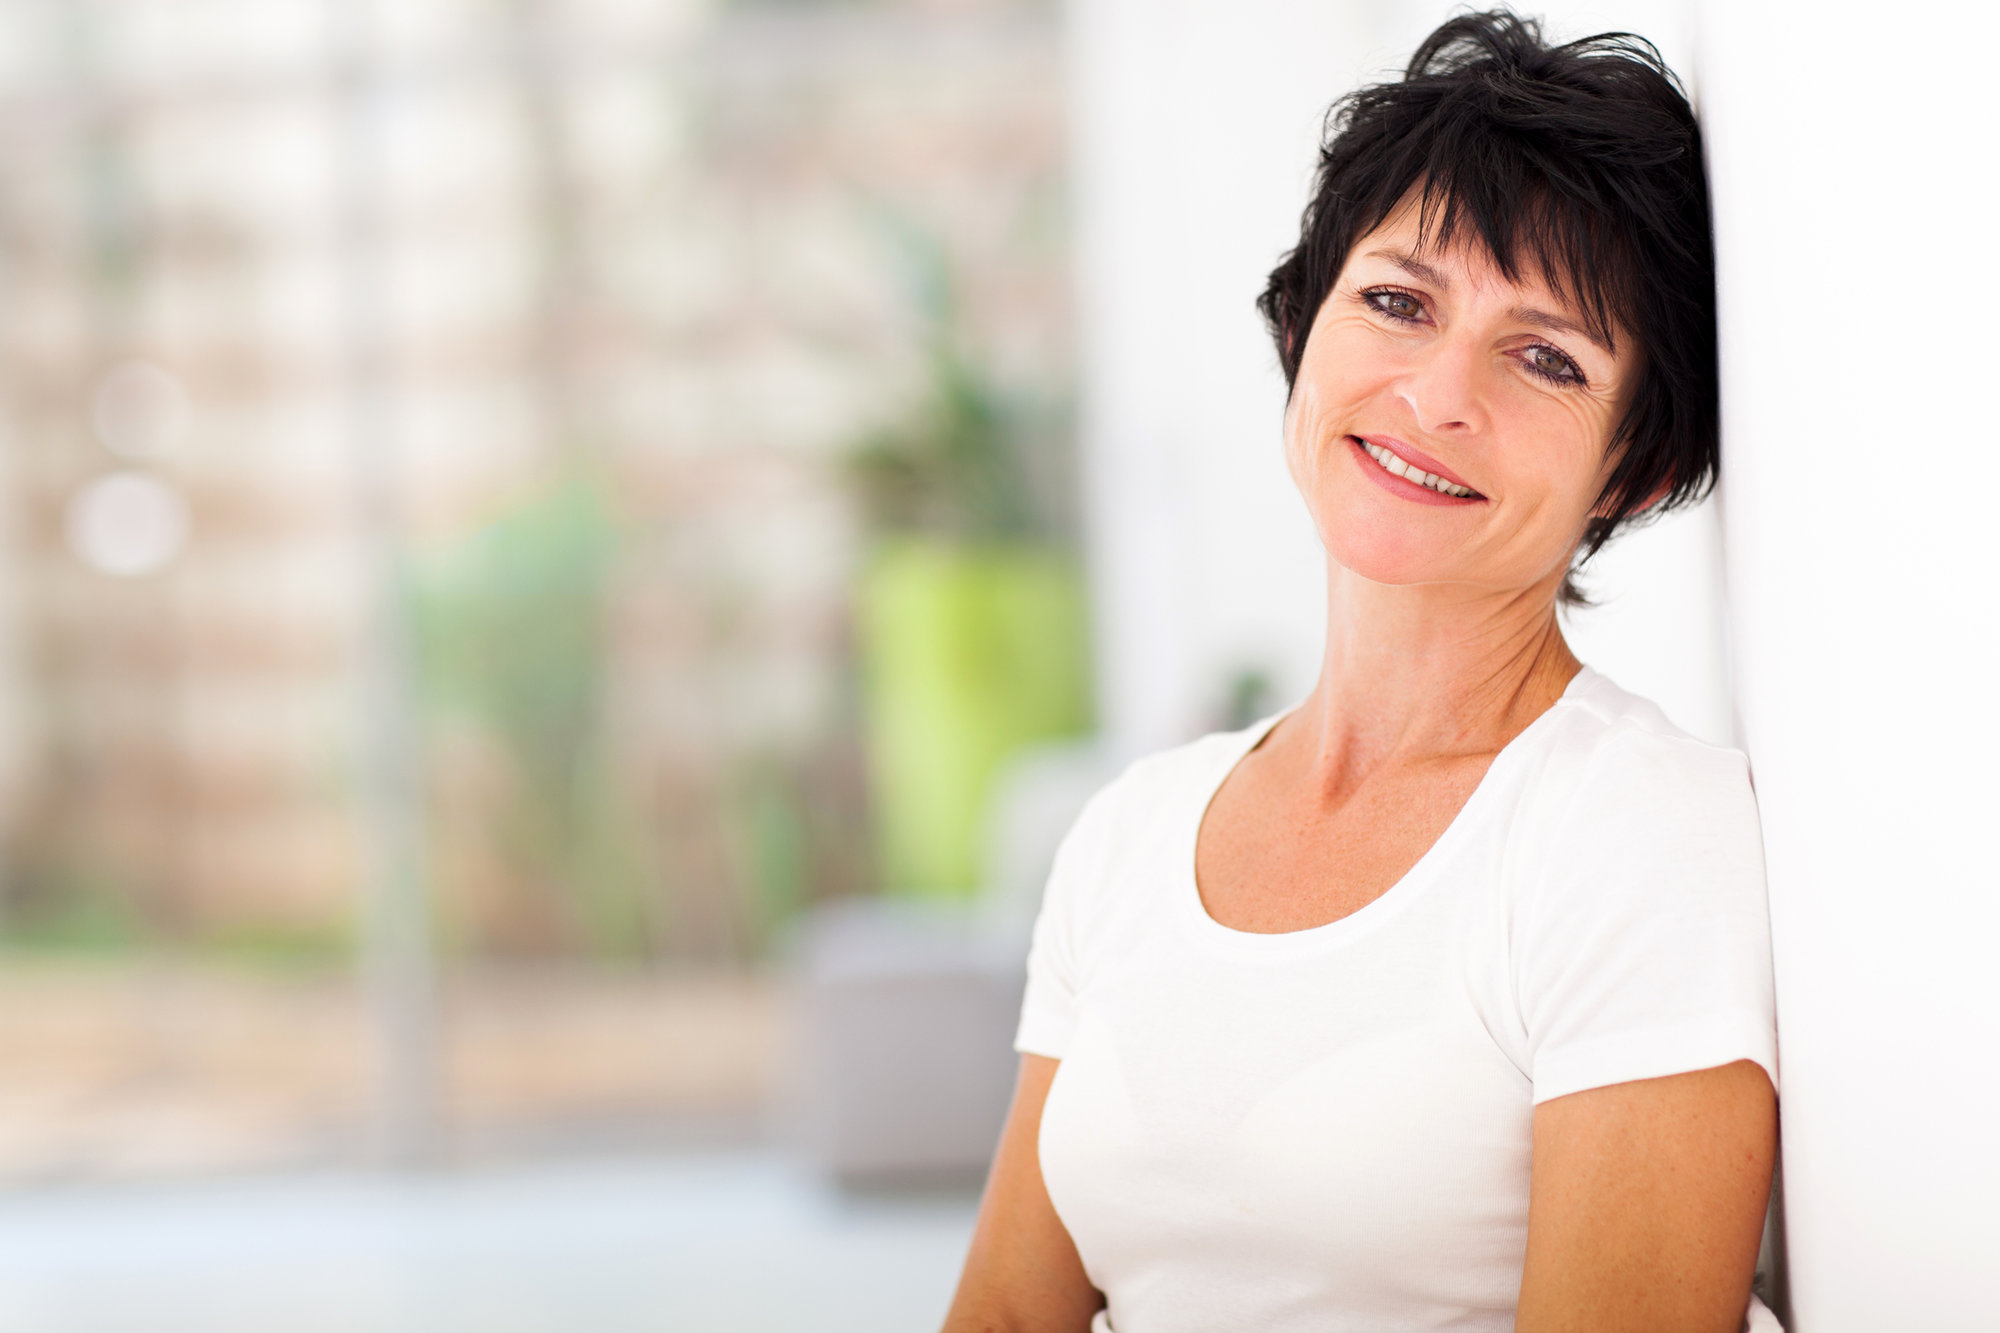 smiling woman with short brown hair wearing a white tshirt